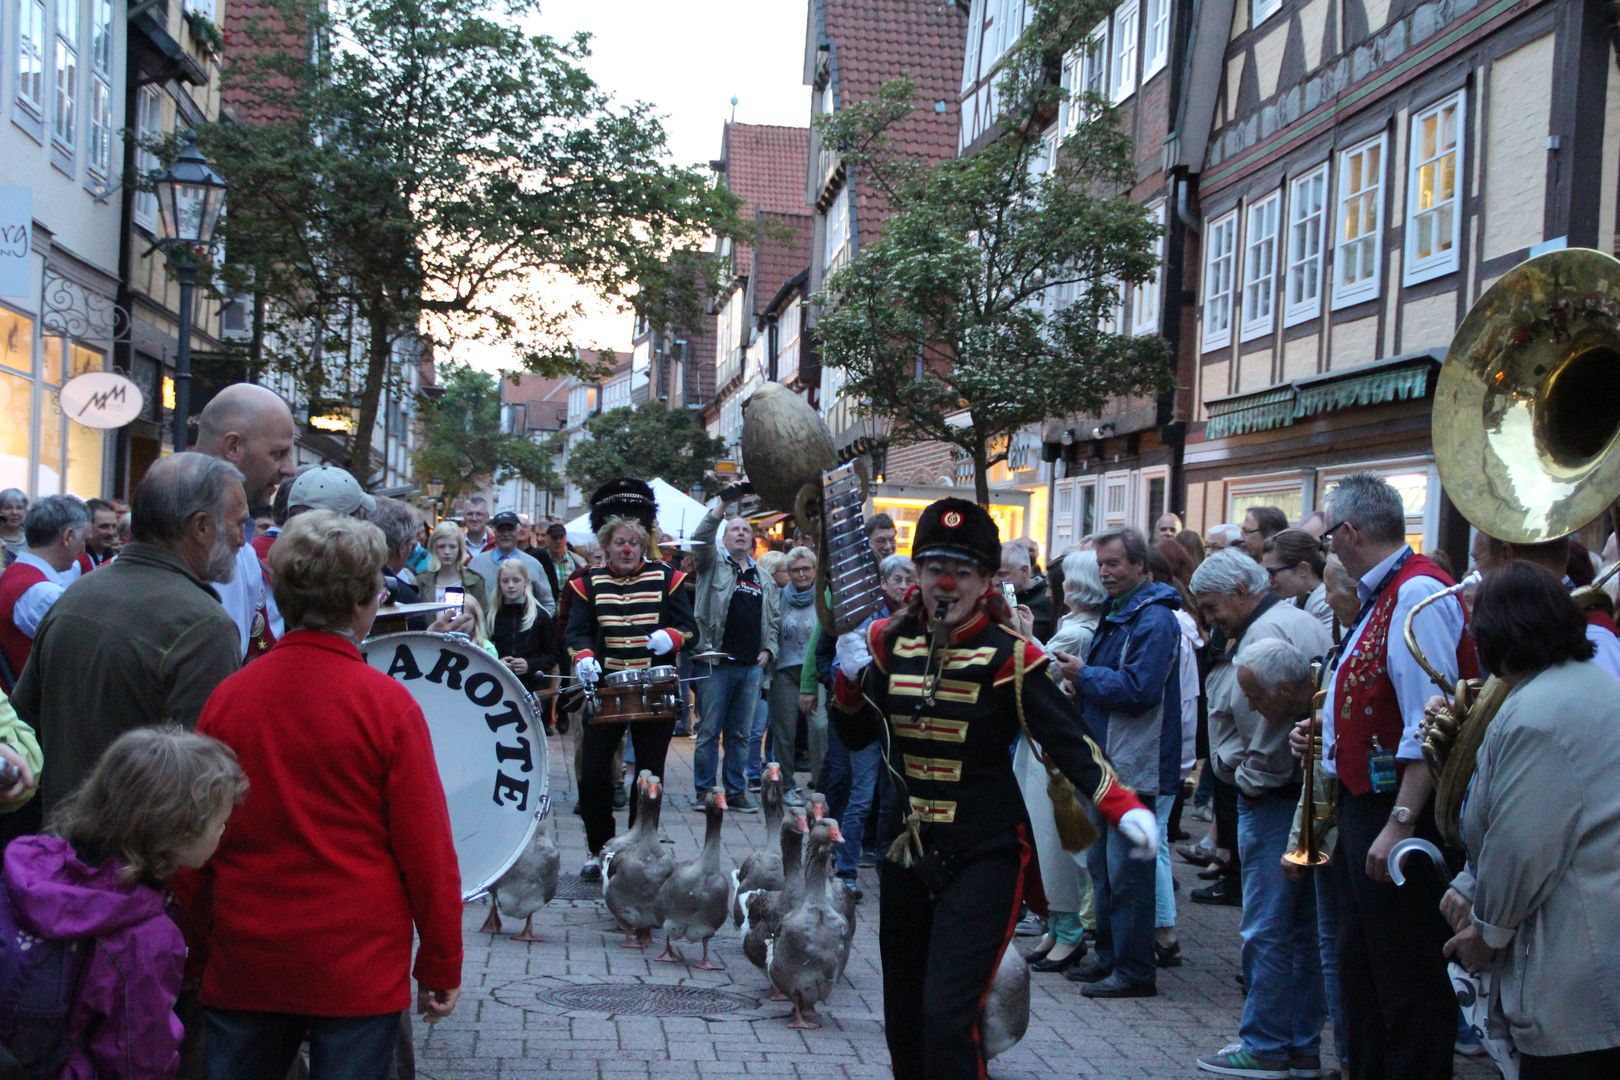 Streetparade in Celle